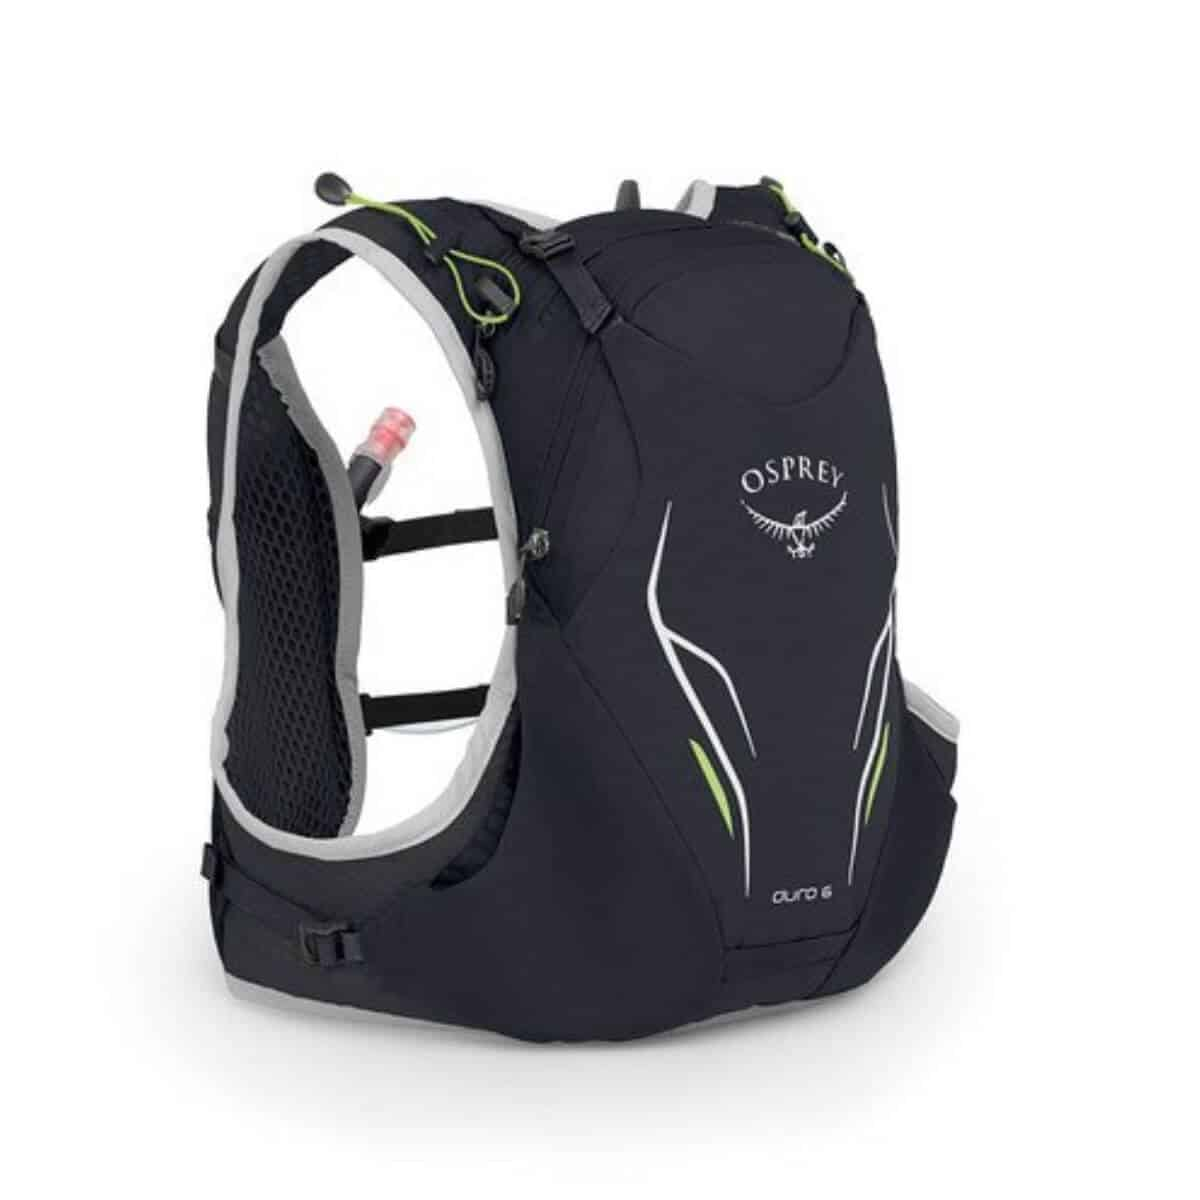 Black hydration pack.